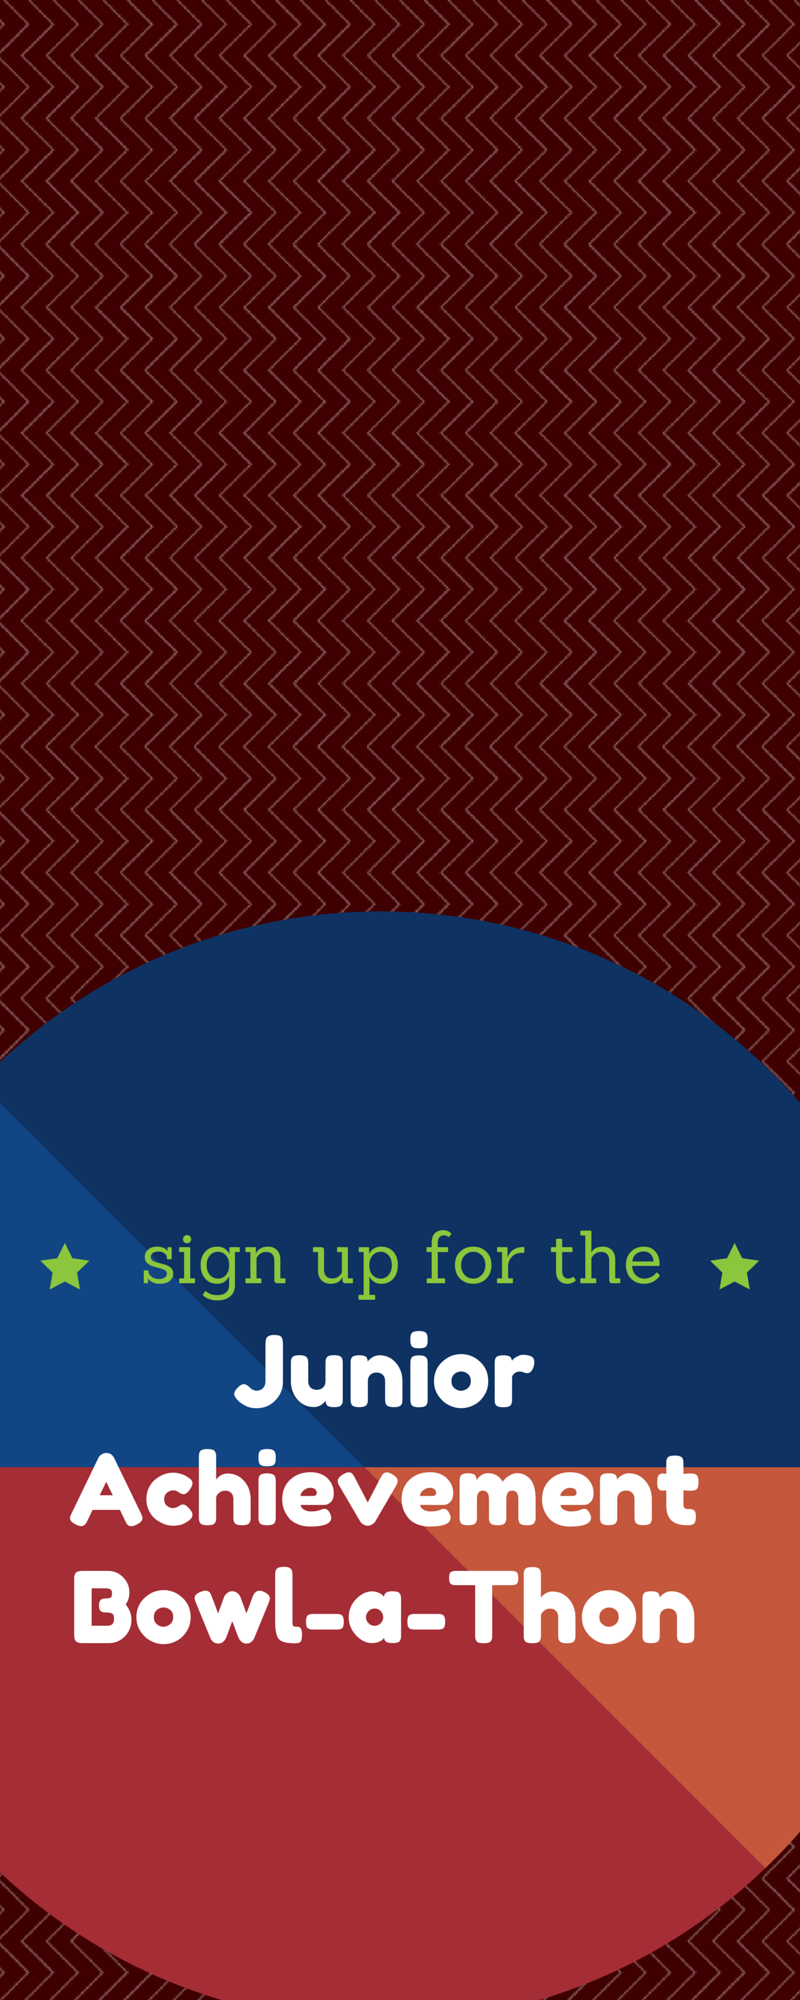 community organizations university groups junior achievement the junior achievementreg bowl a thon is a one of a